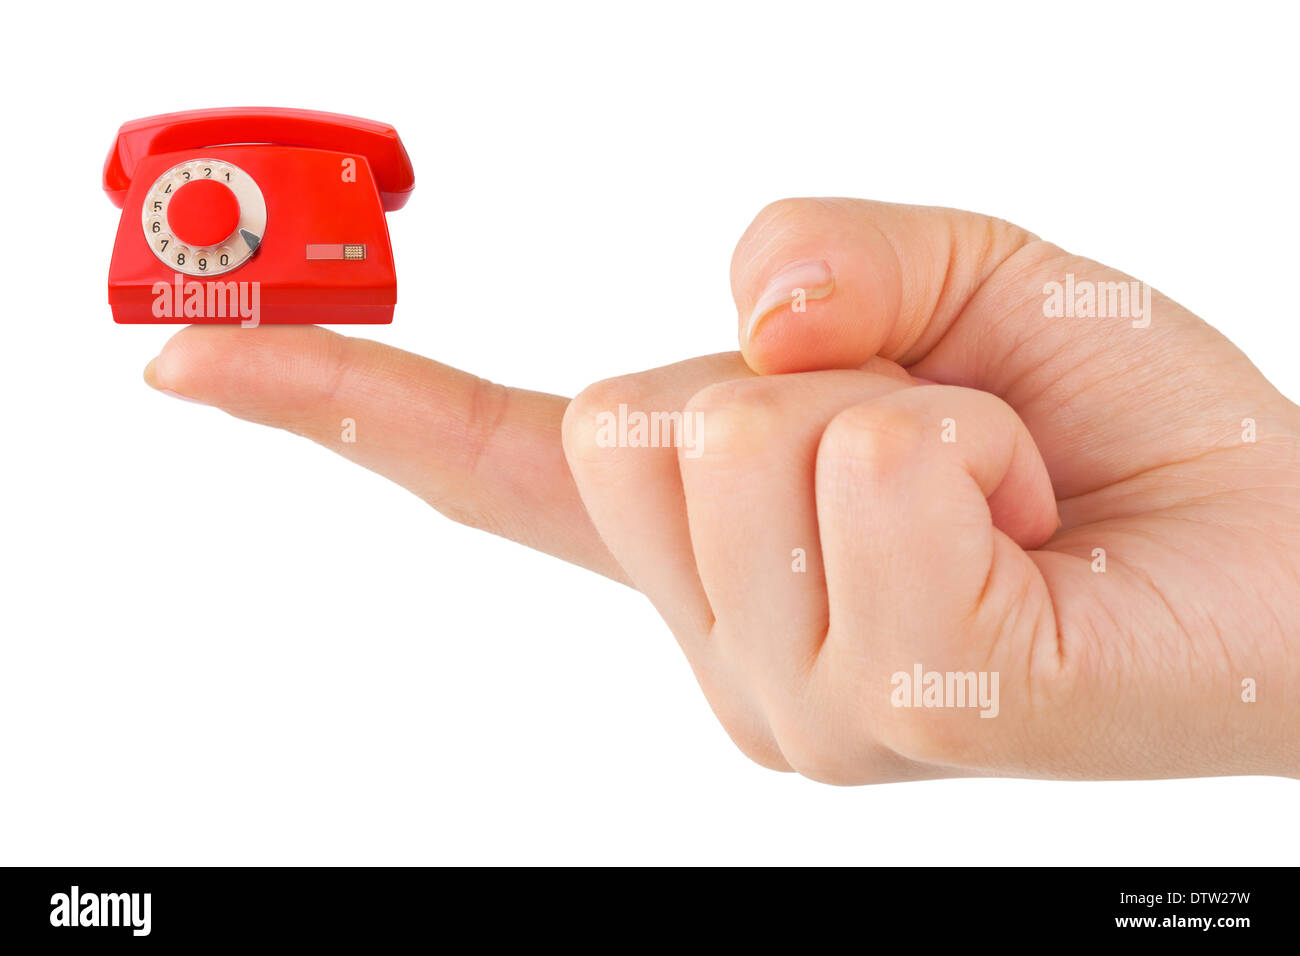 Hand and small telephone - Stock Image